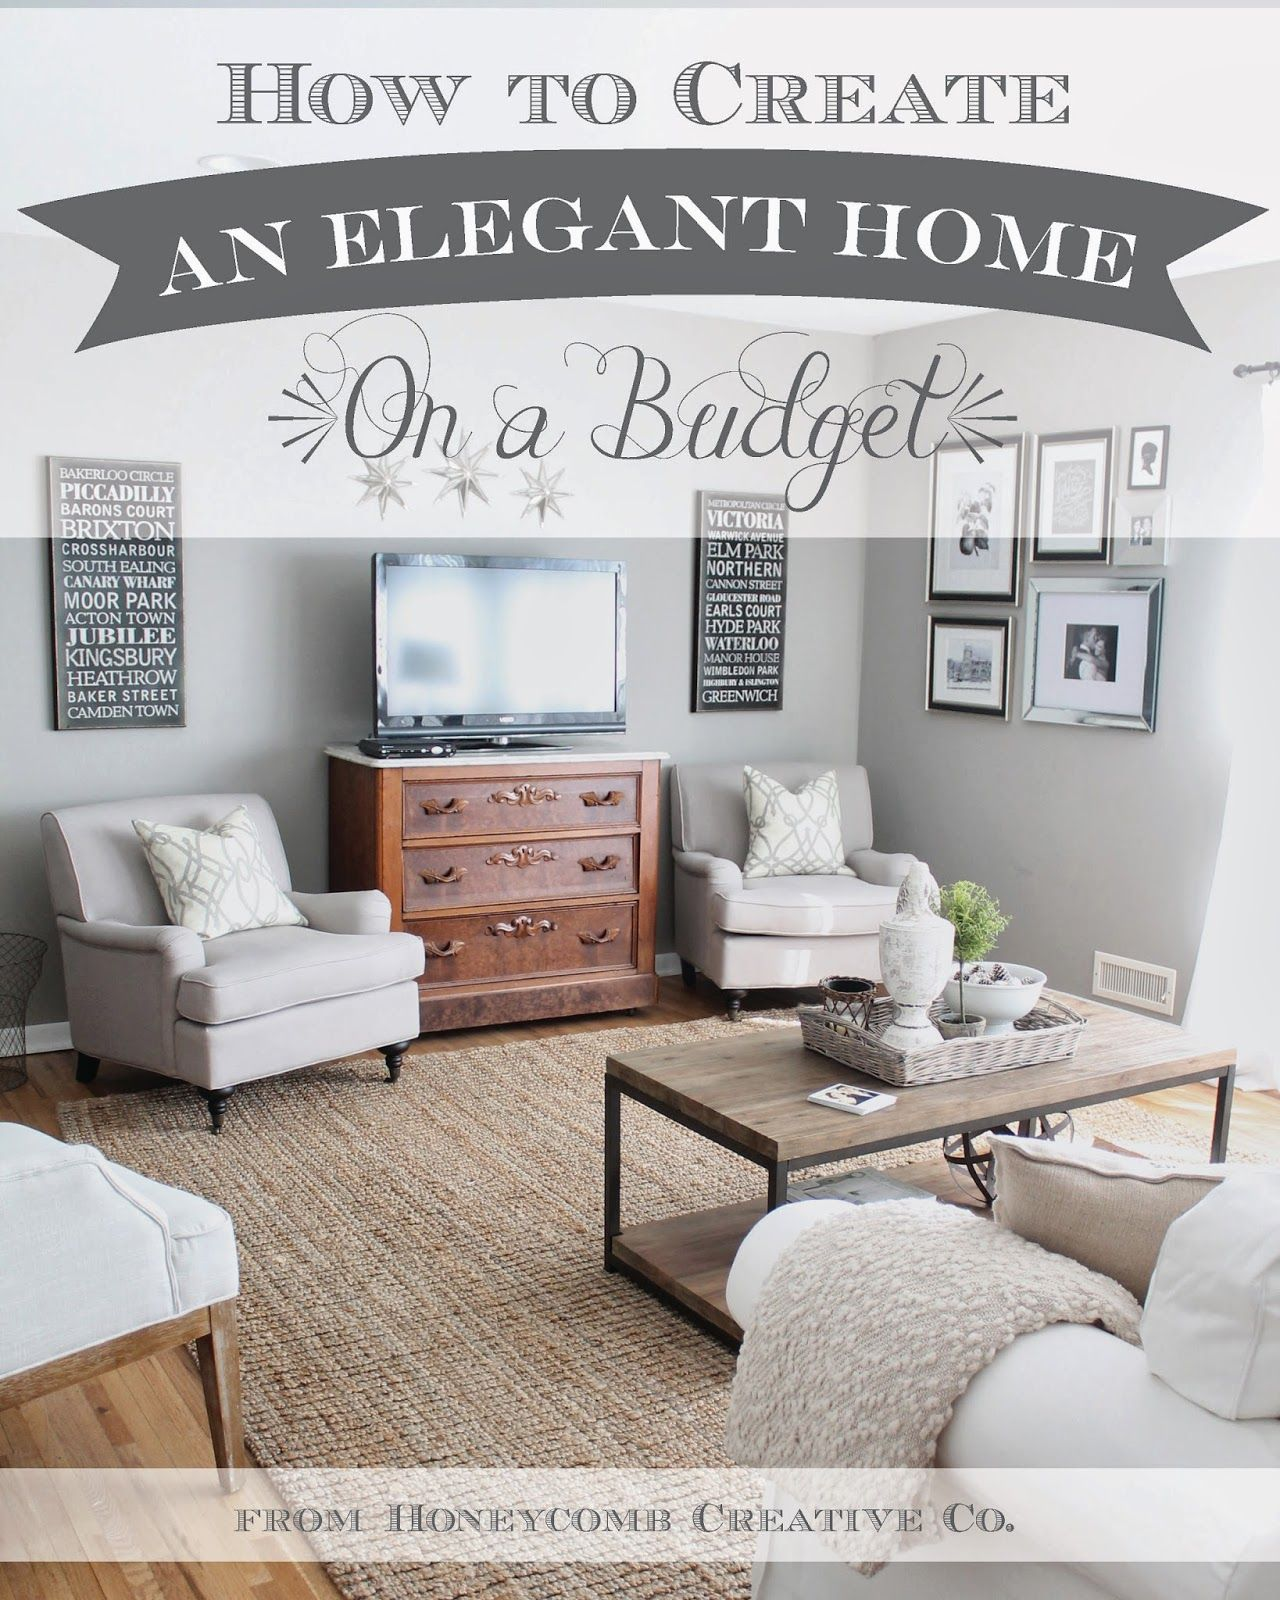 High End Home Design Ideas: How To Create An Elegant Home On A Budget: 7 Tips And